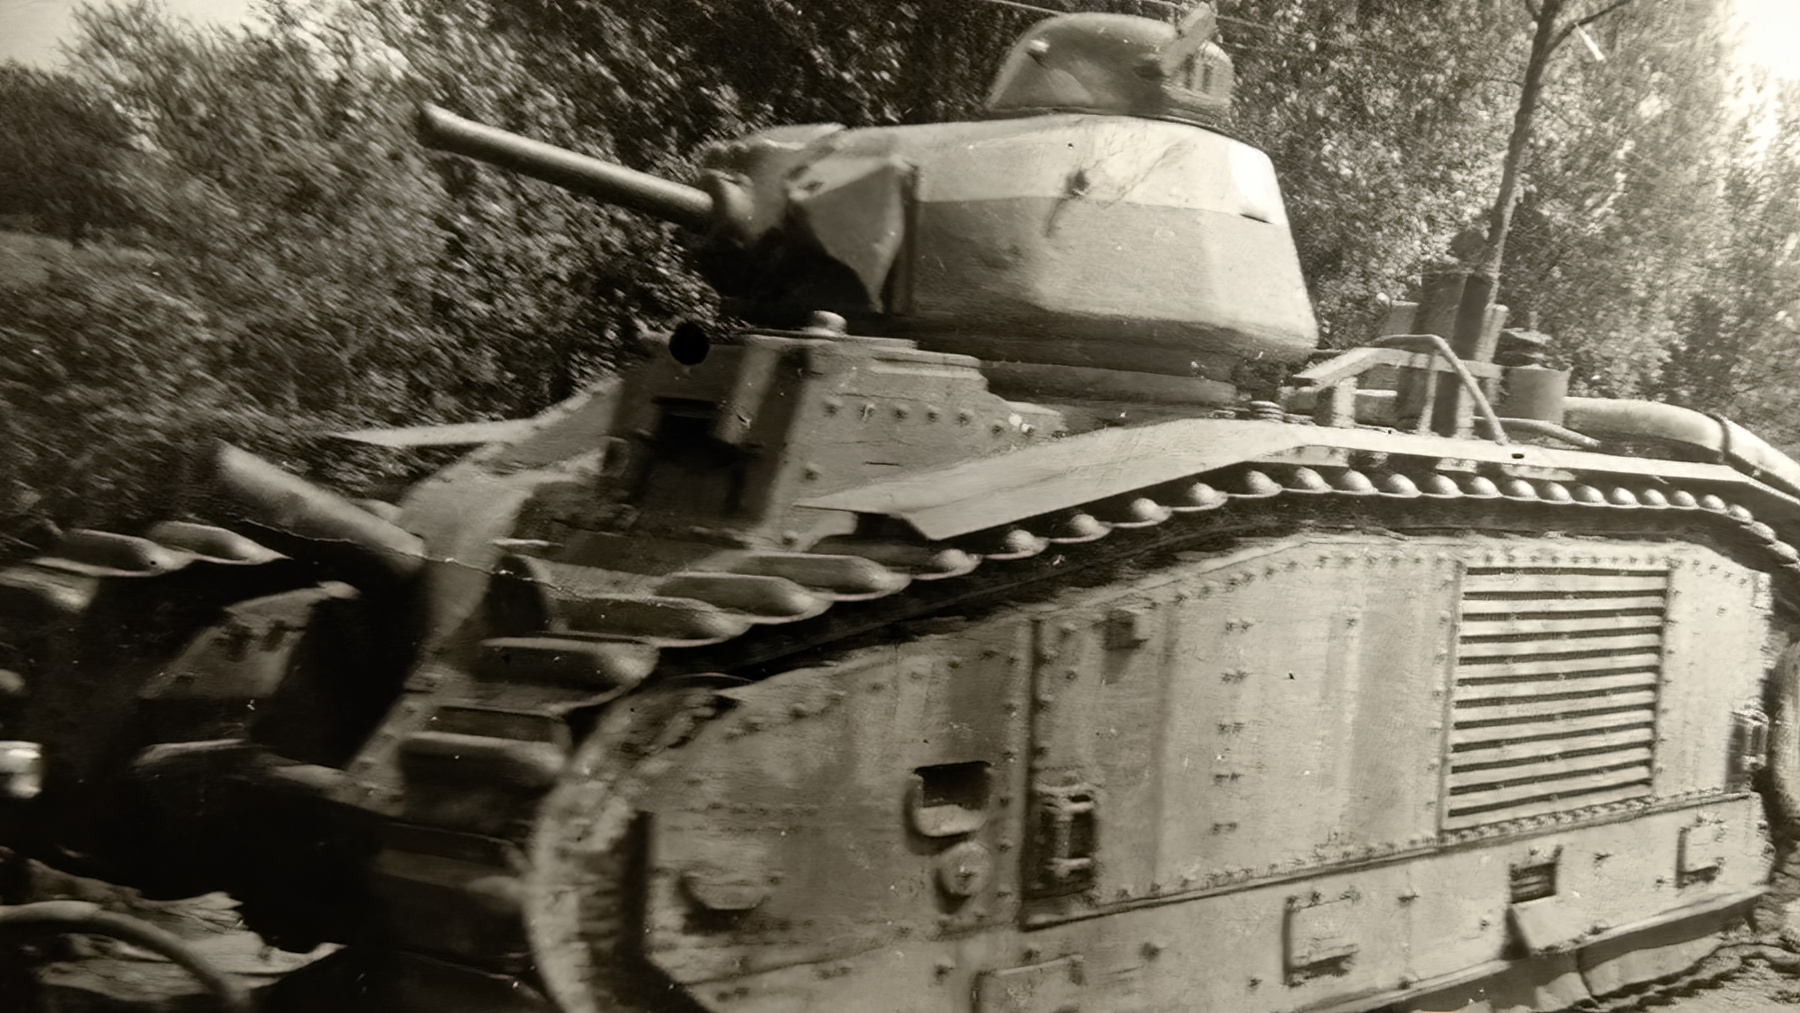 French Army Renault Char B1bis during the battle of France 1940 ebay 01